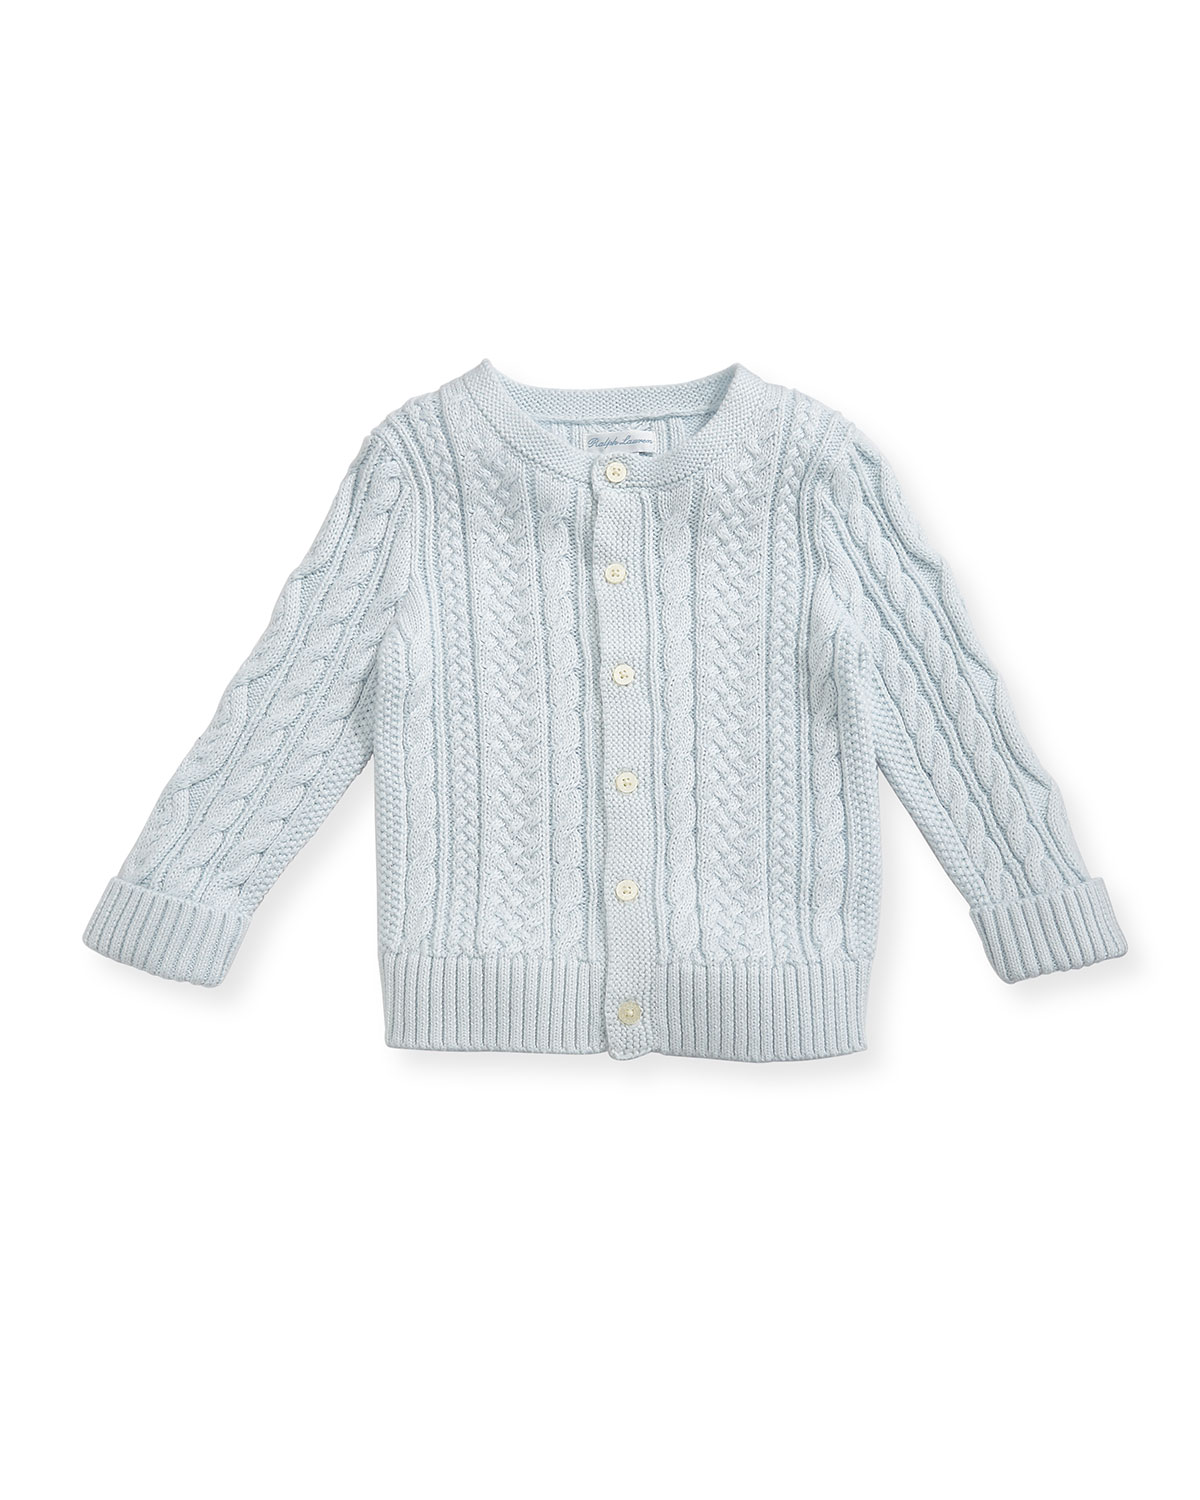 Ralph Lauren Childrenswear Kids' Soft Pearl Cotton Cable-knit Cardigan, Blue, 6-24 Months